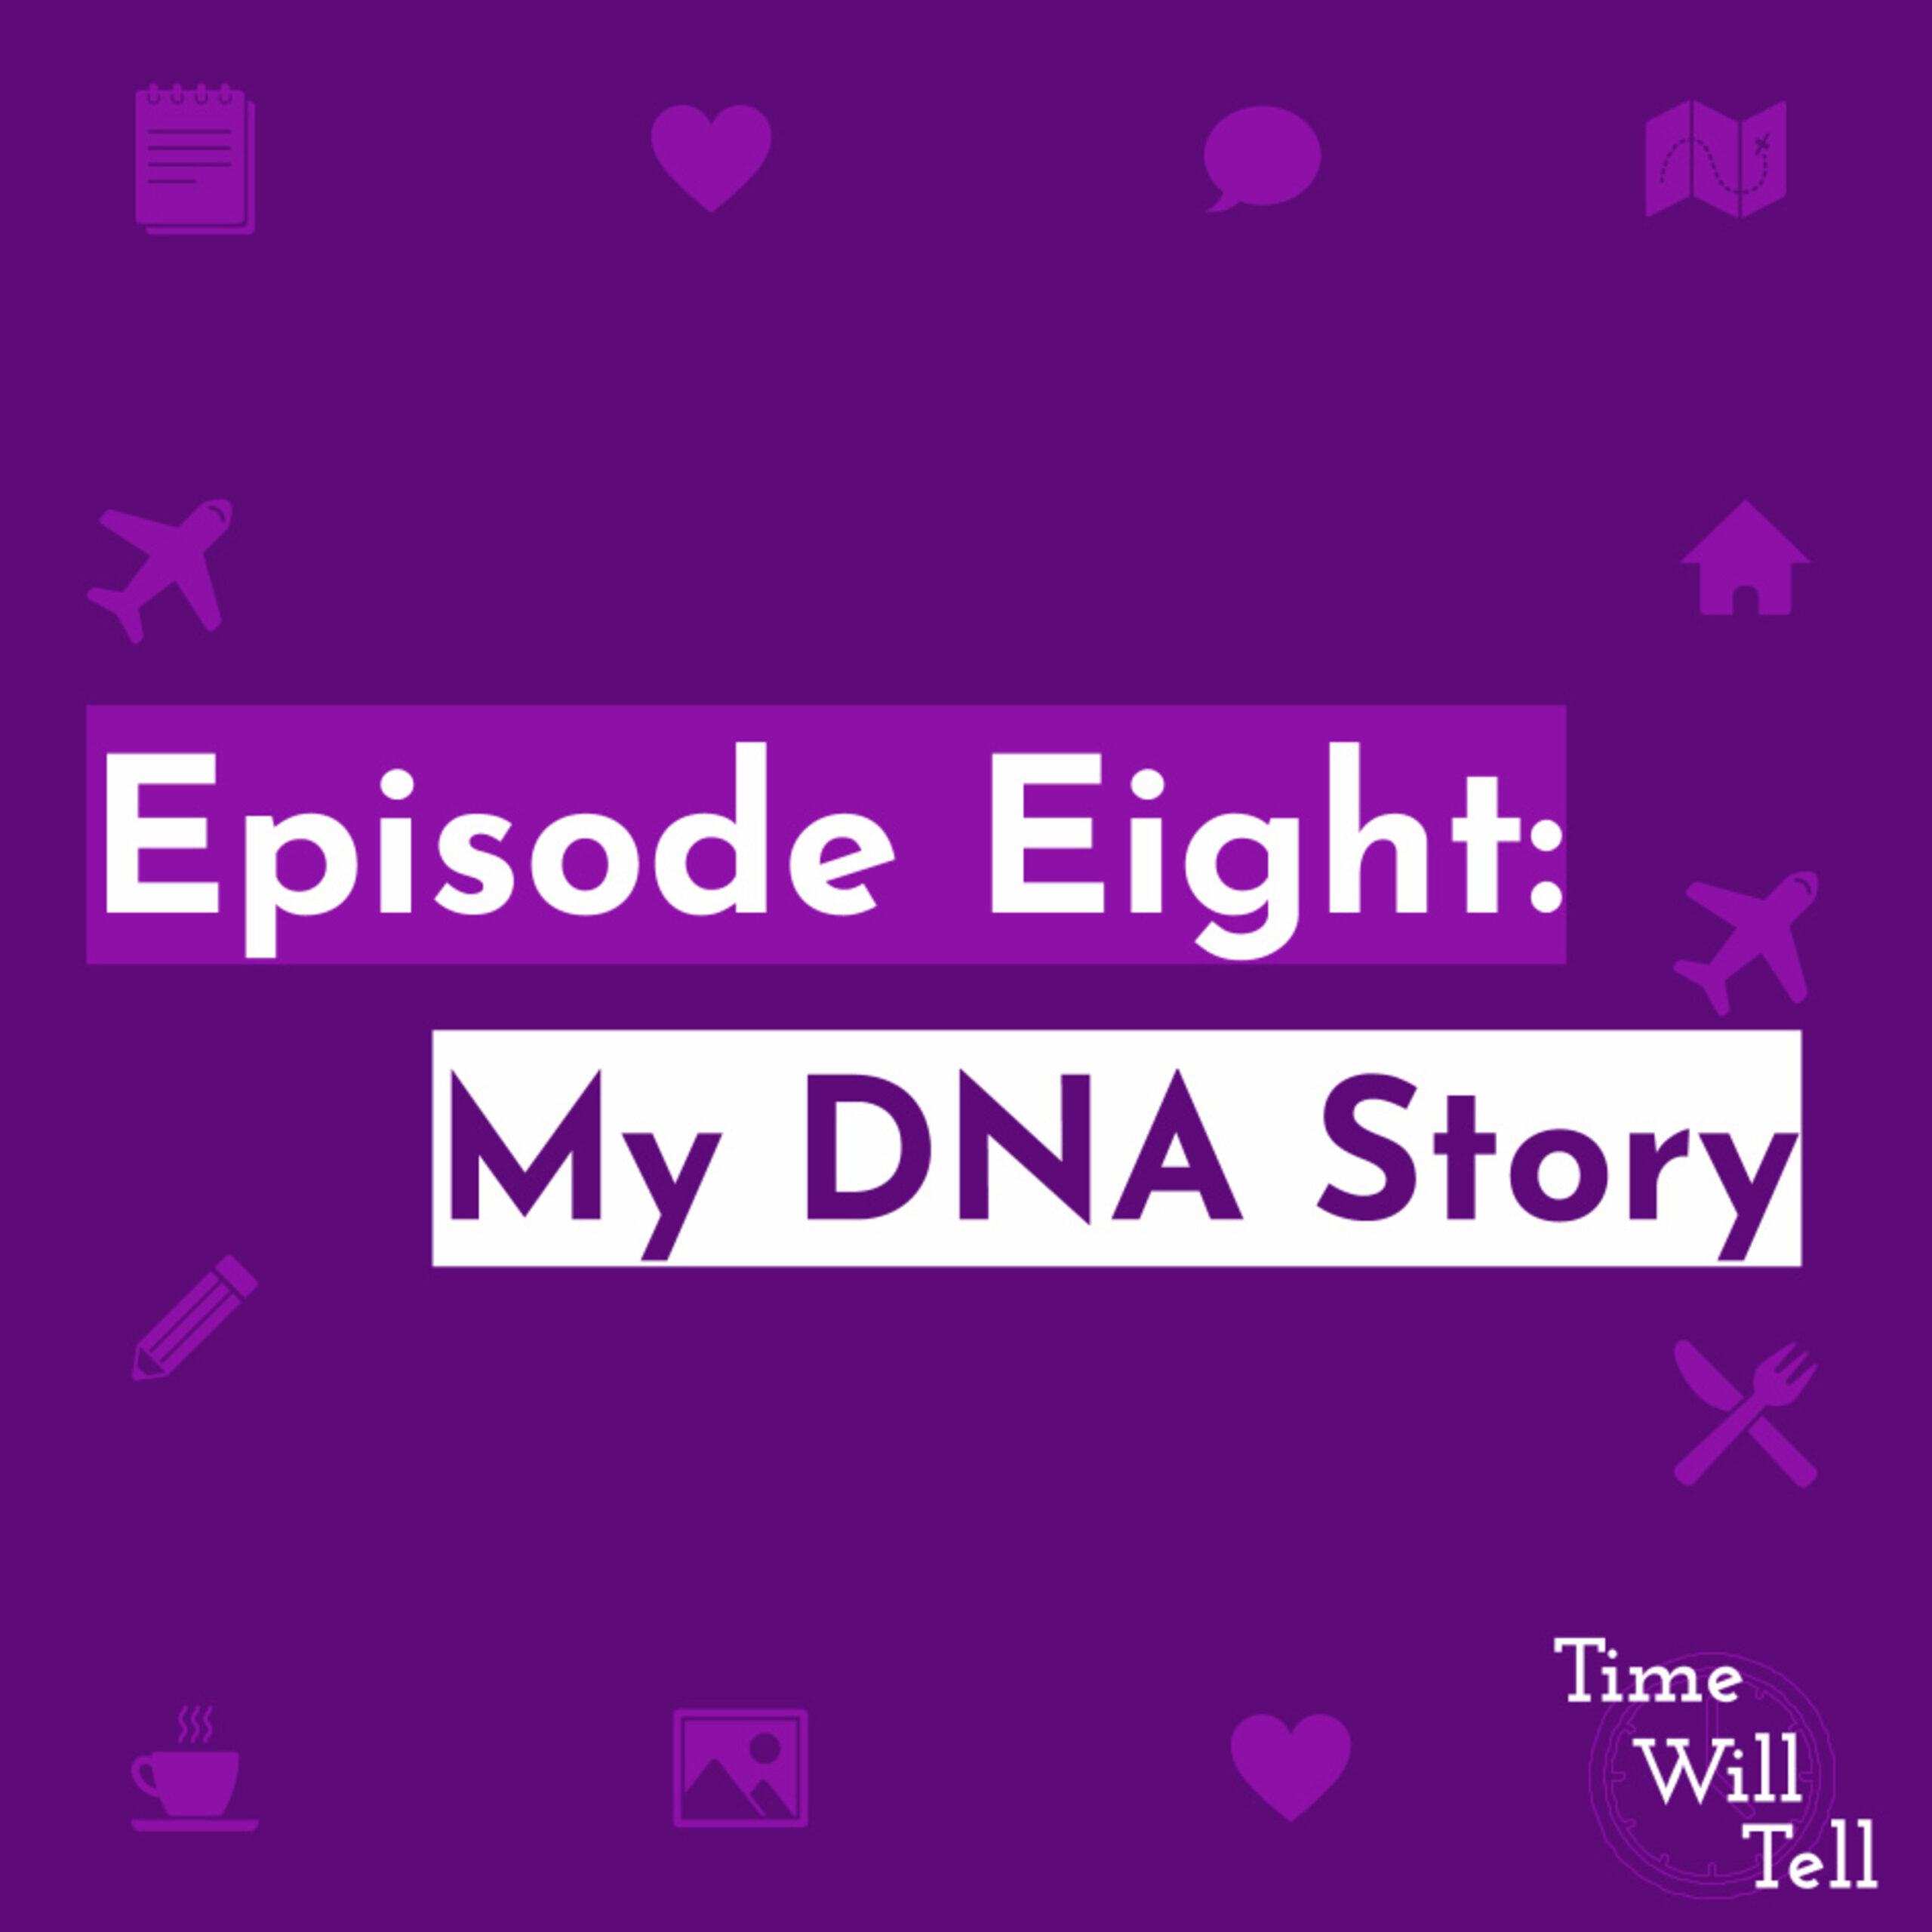 Episode Eight: My DNA Story